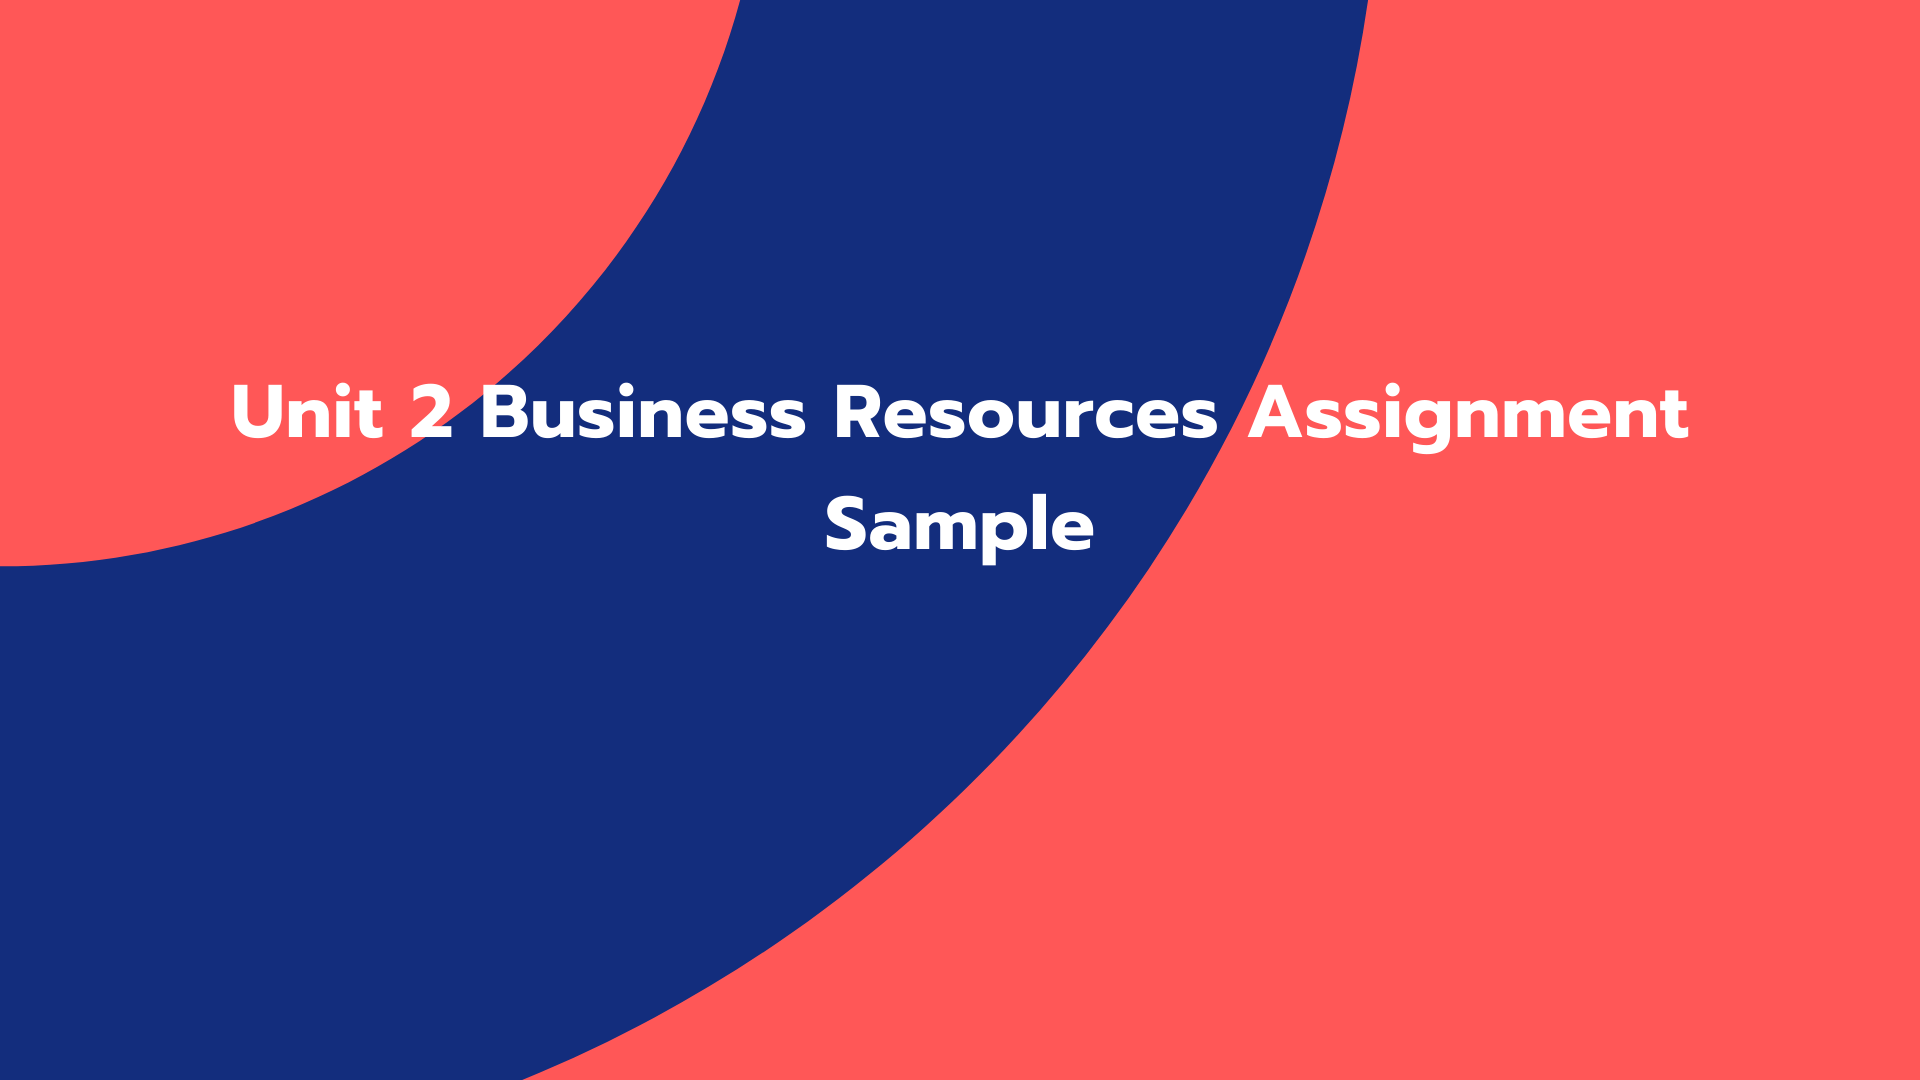 Unit 2 Business Resources Assignment Sample